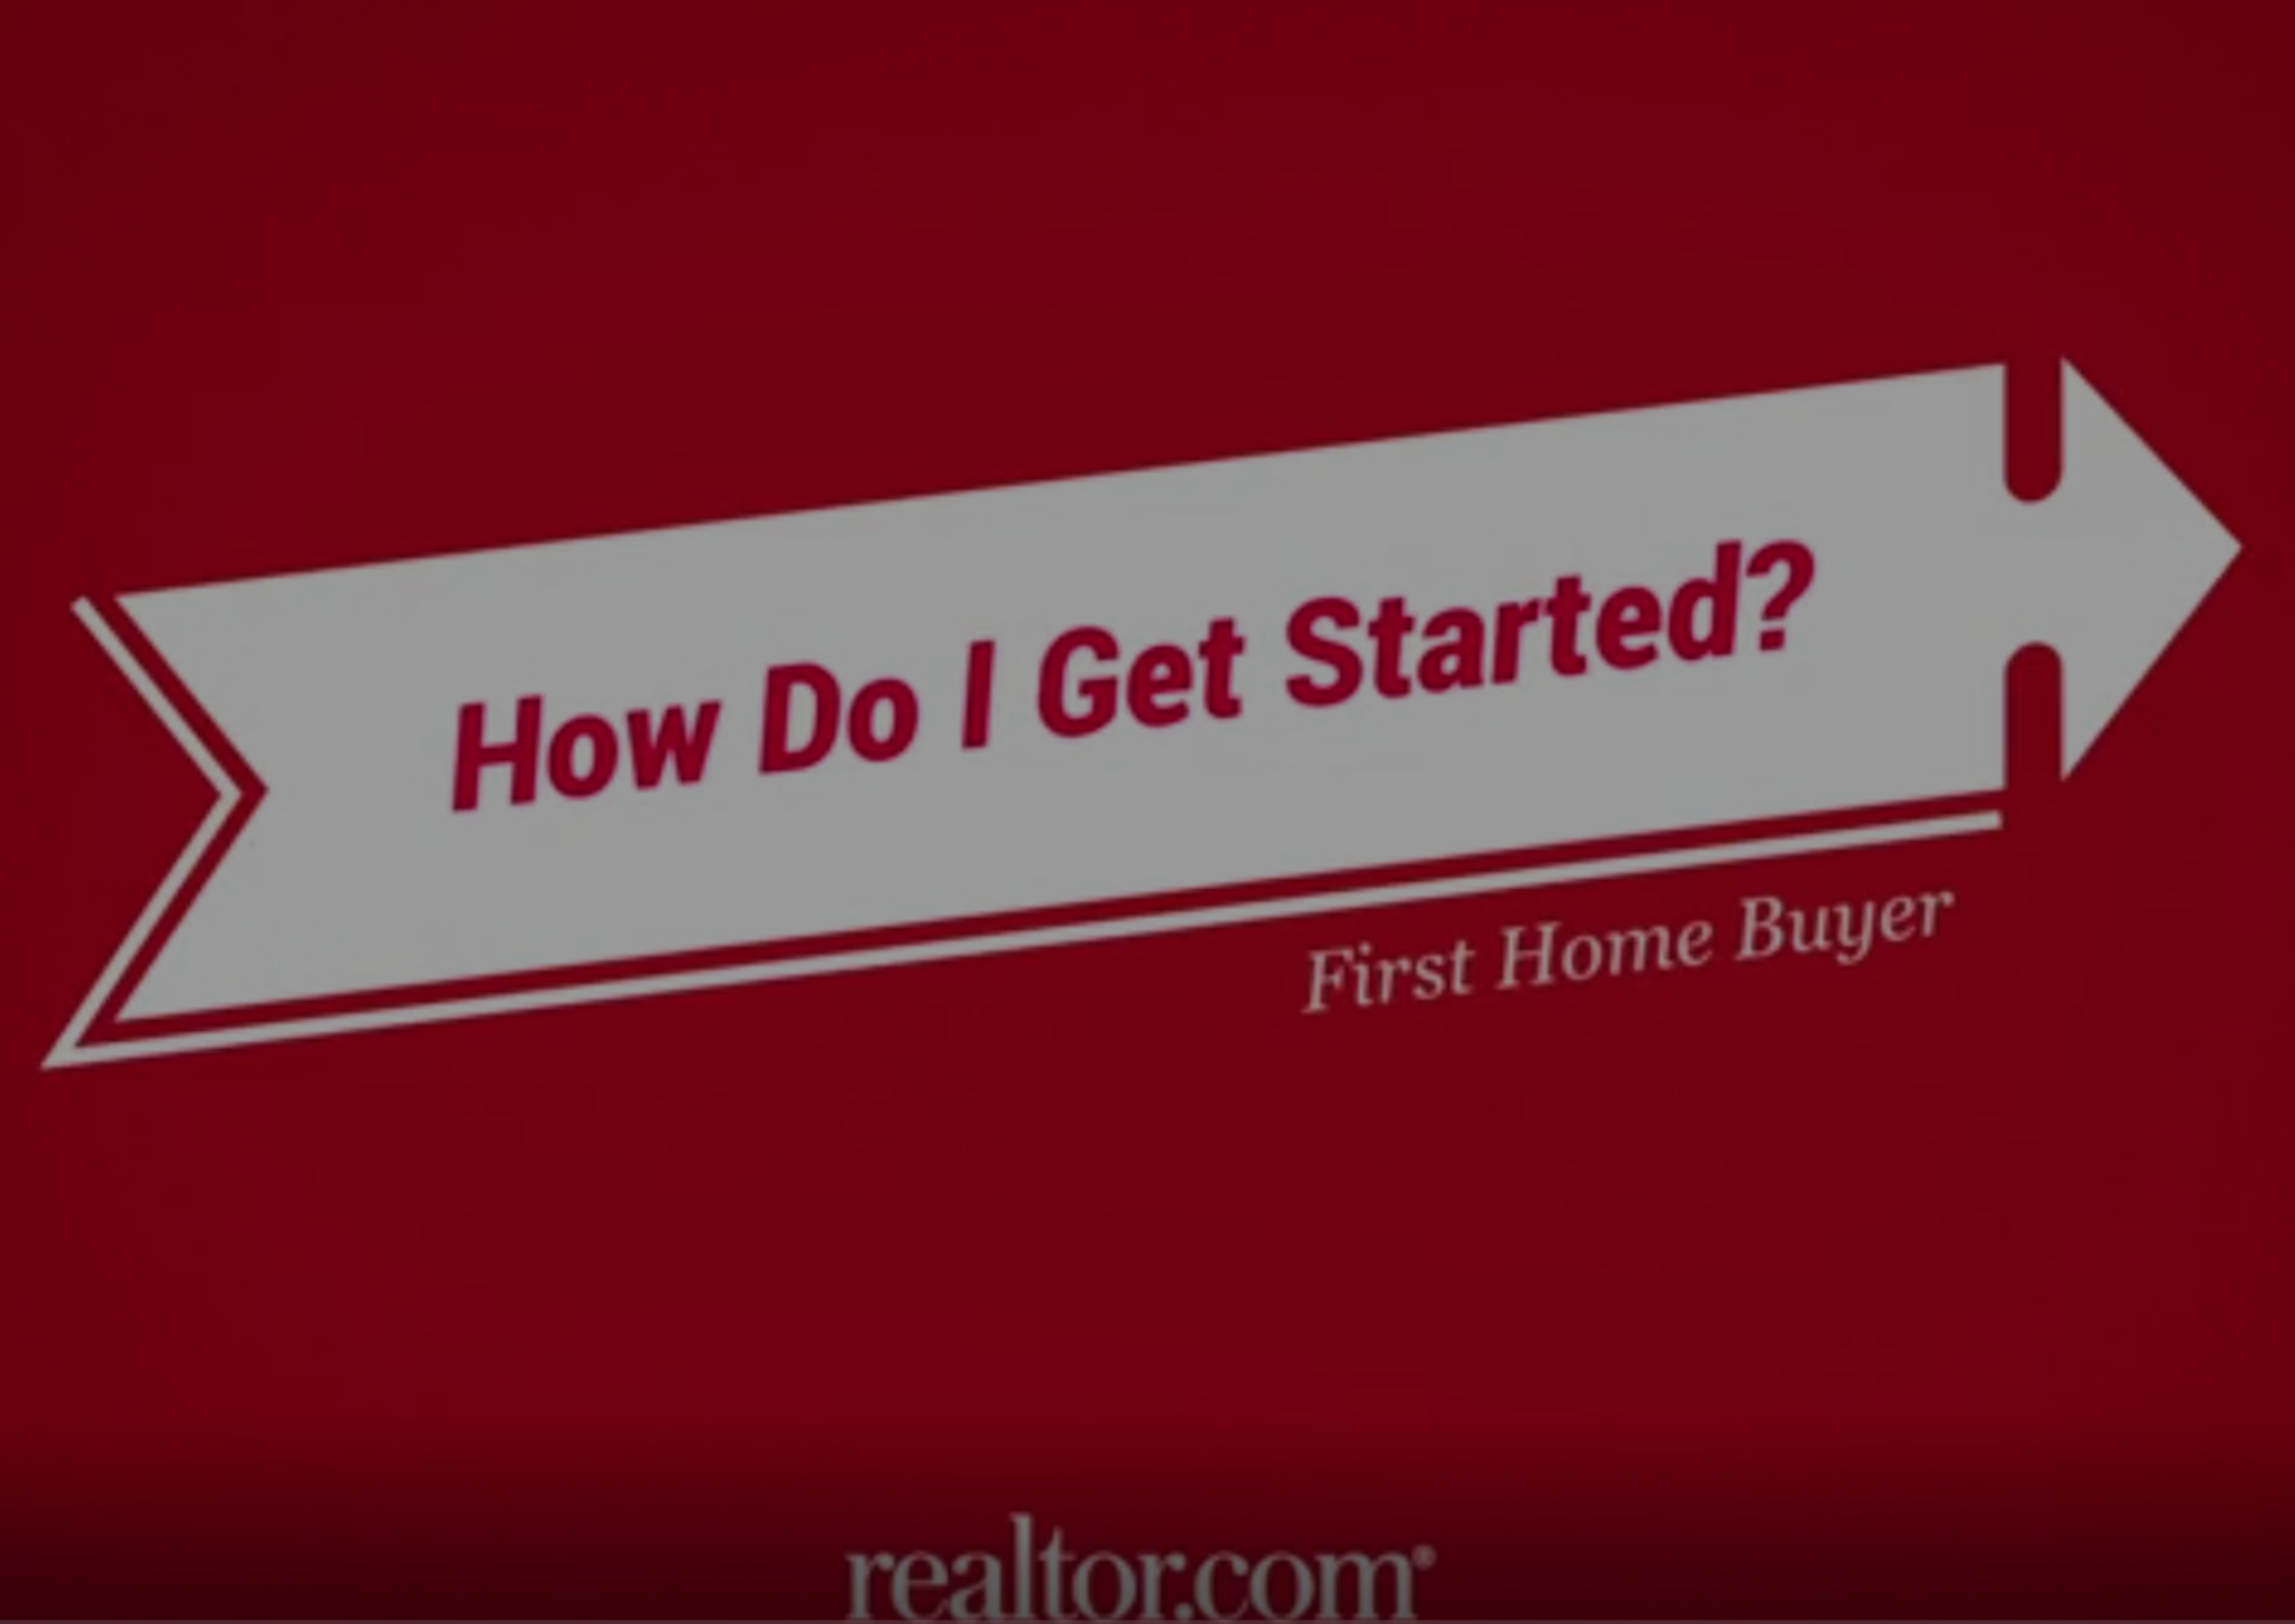 Step 1: How do I get started?